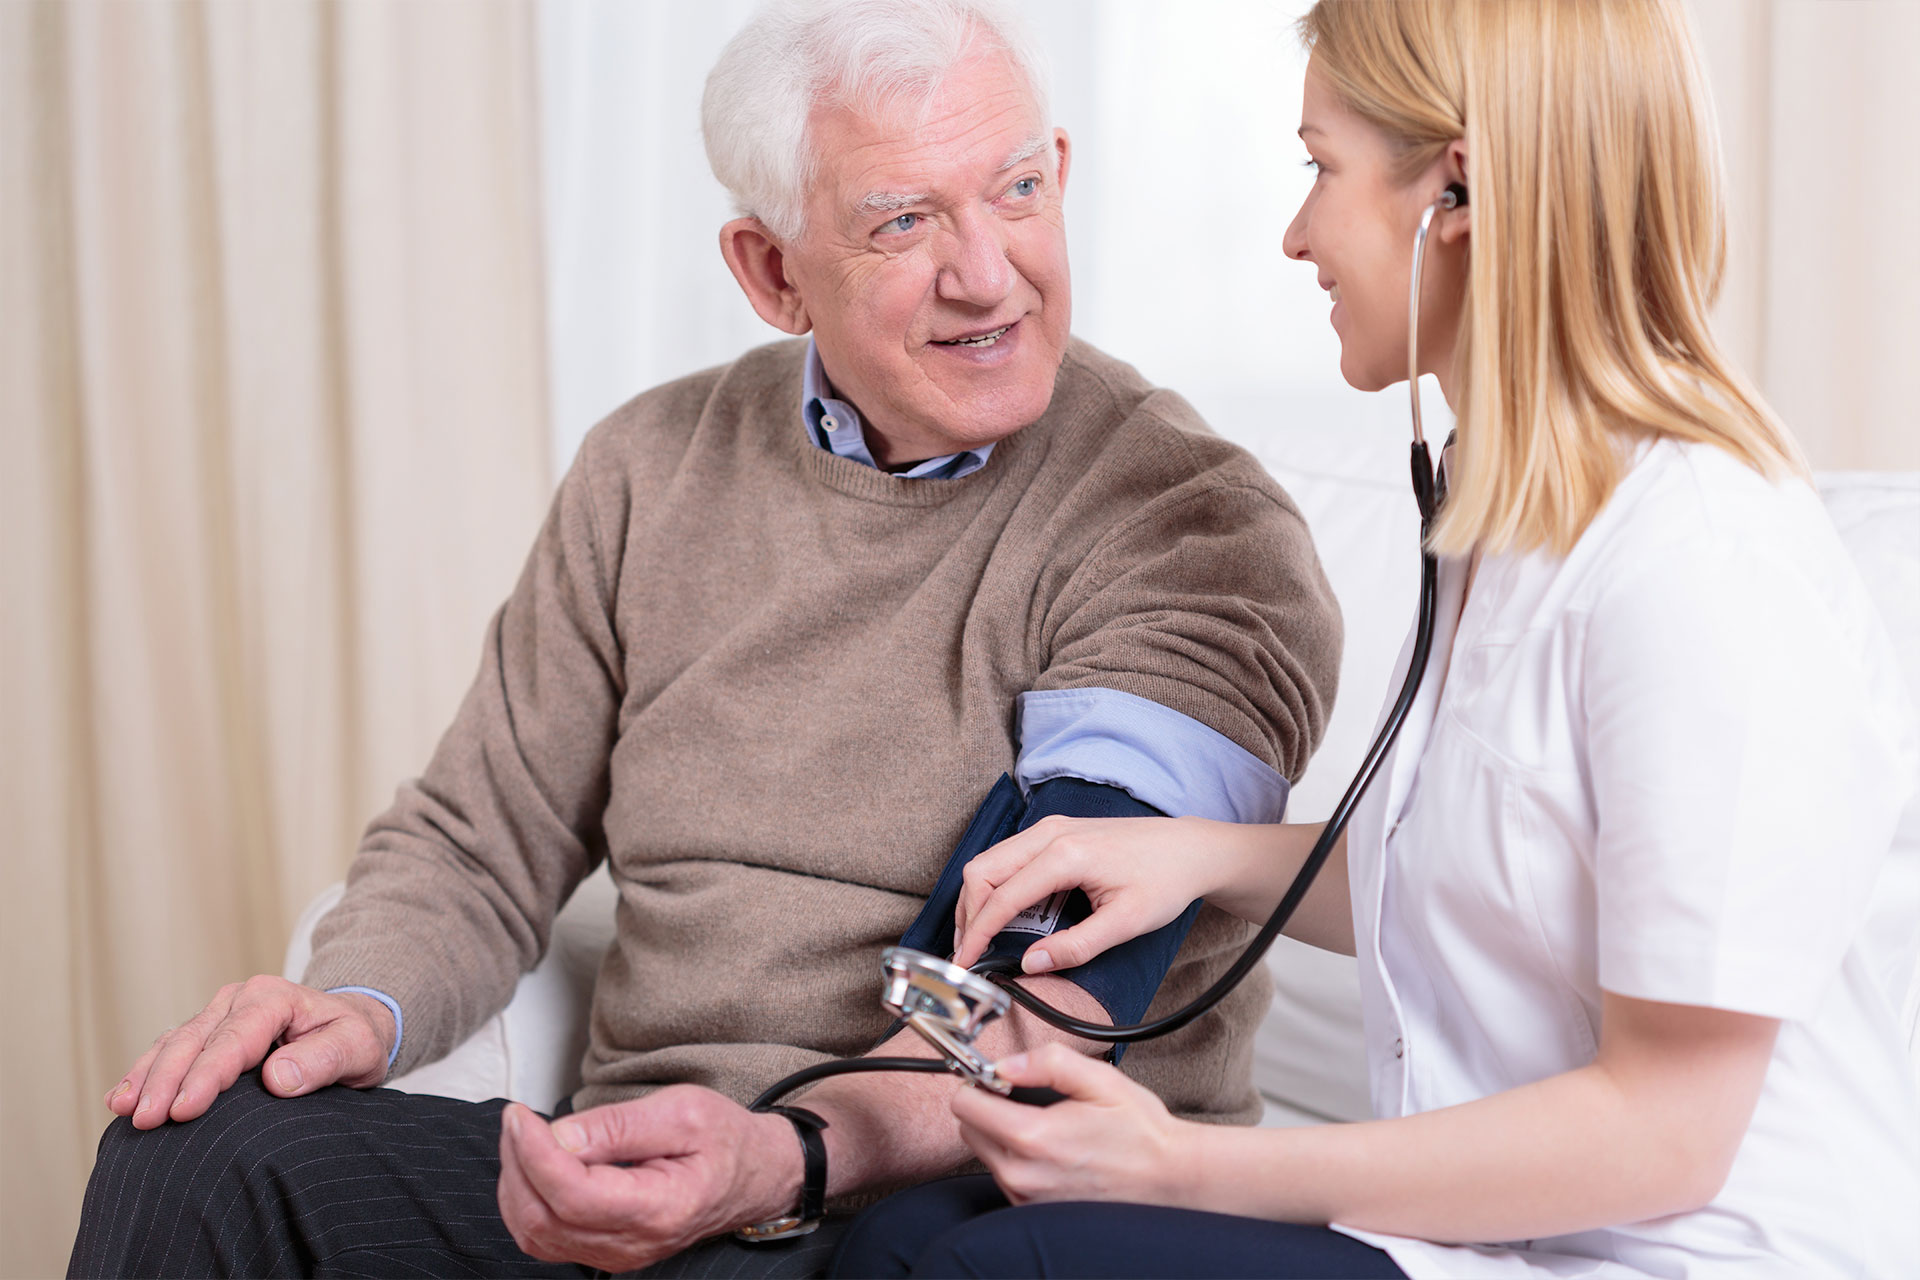 nurse caring for patient by checking for high or unhealthy cholesterol